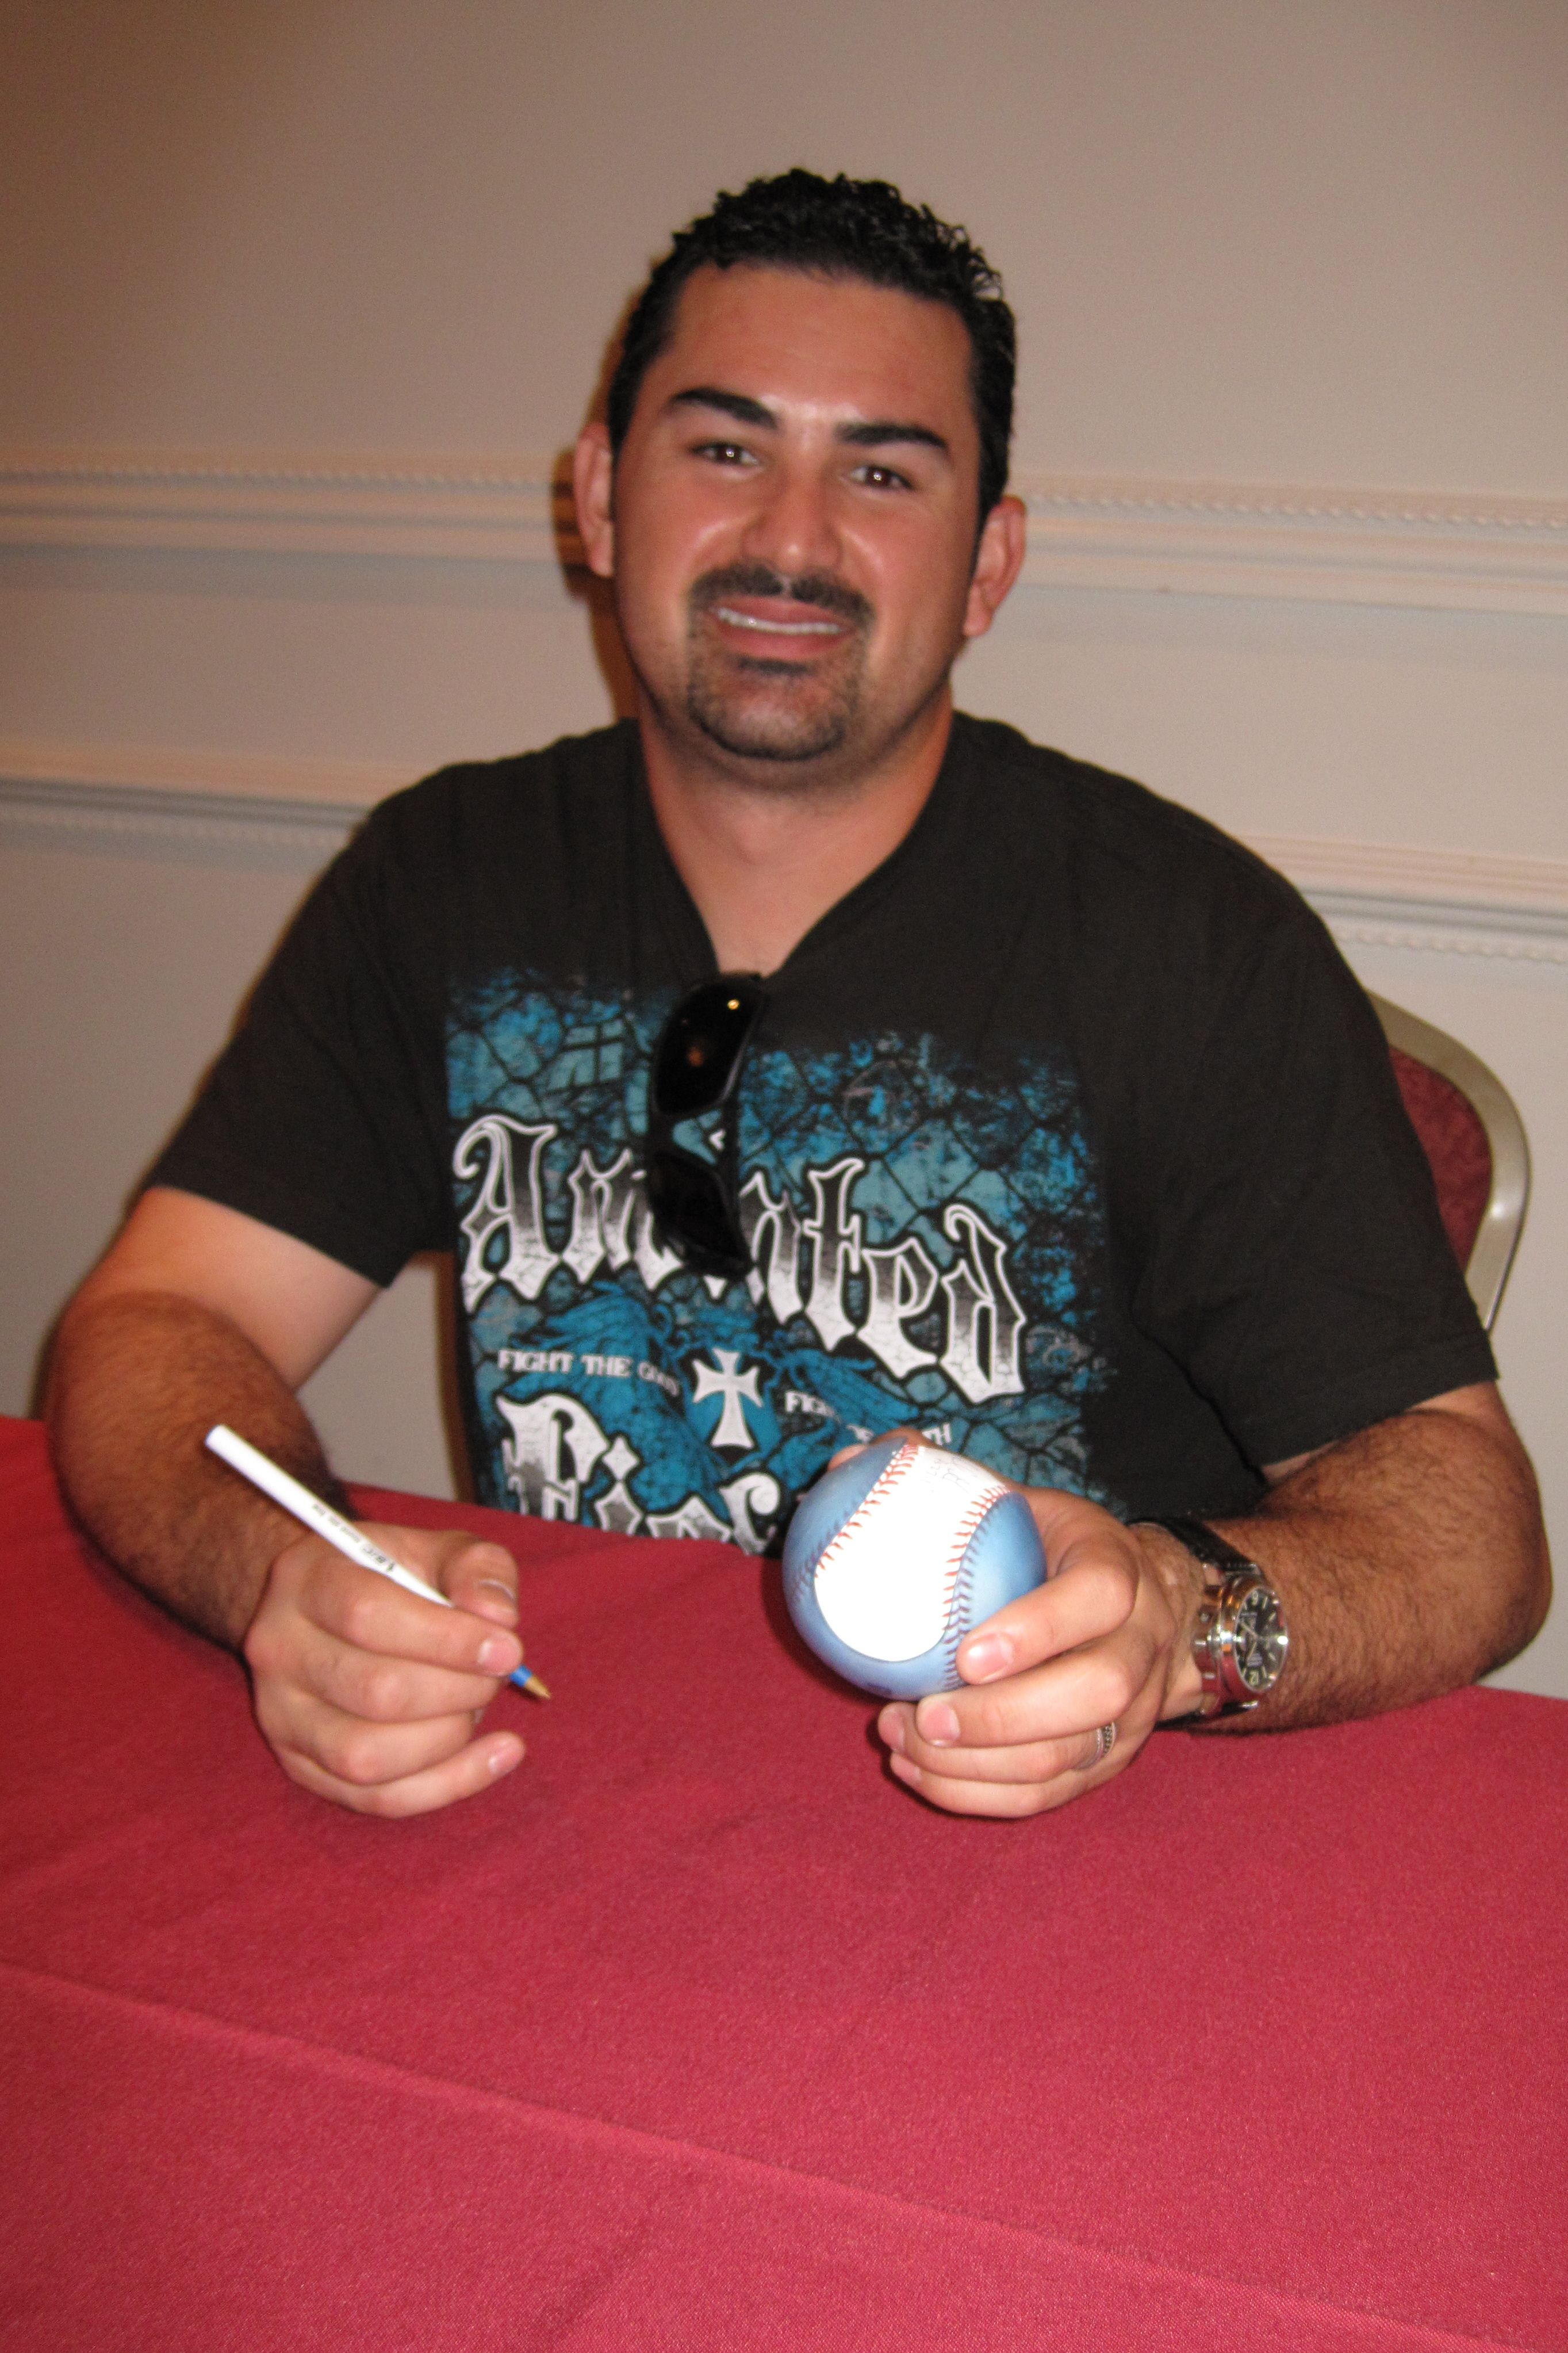 Adrian Gonzalez holding a more modern prototype Sweetspot Jacket  7/9/2011 in Randolph, Mass